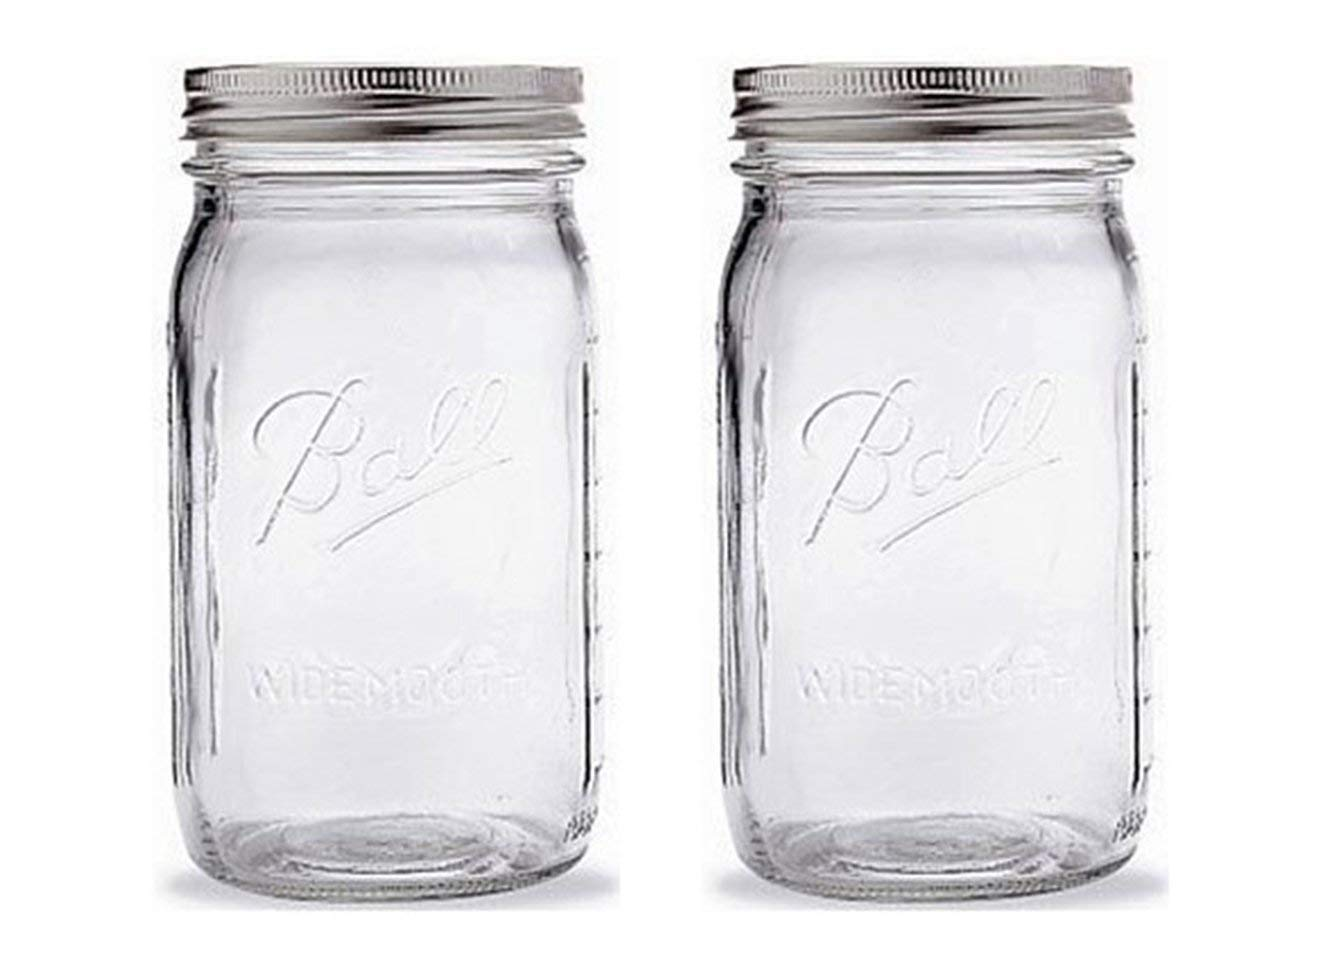 Ball Mason Jar-32 oz. Clear Glass Ball Wide Mouth-Set of 2 by Ball